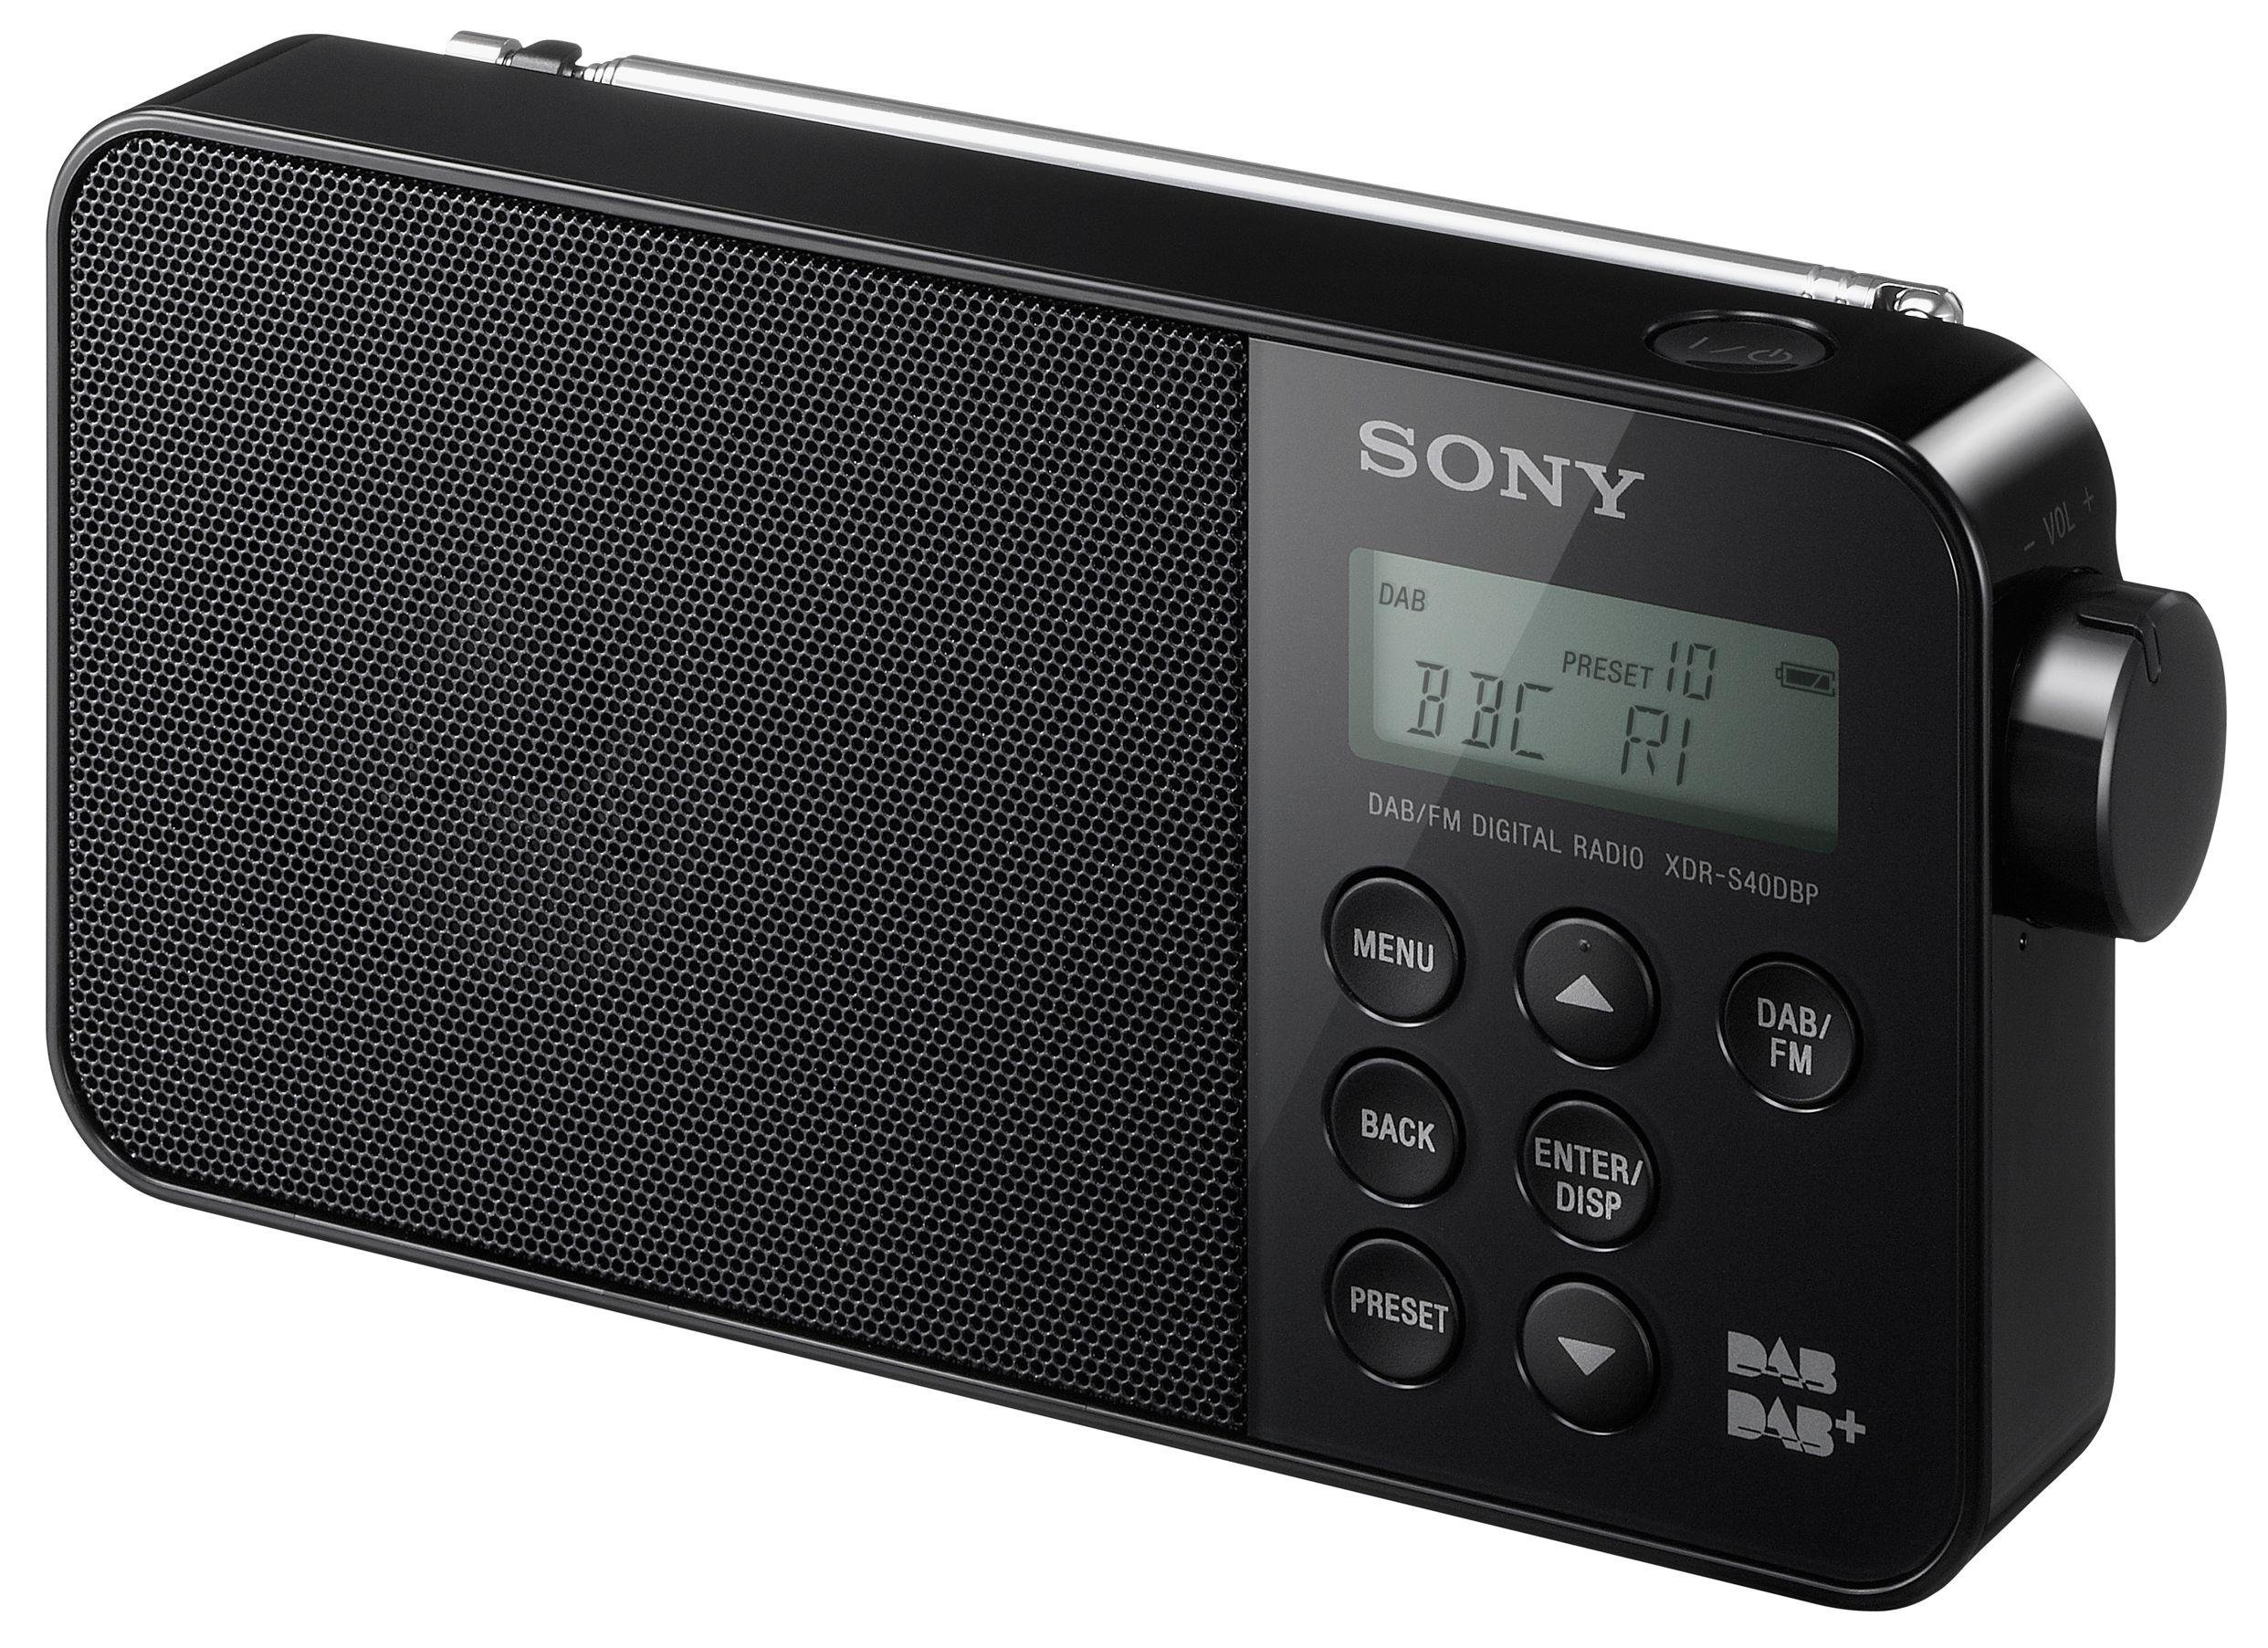 sony xdrs40 dab radio black. Black Bedroom Furniture Sets. Home Design Ideas